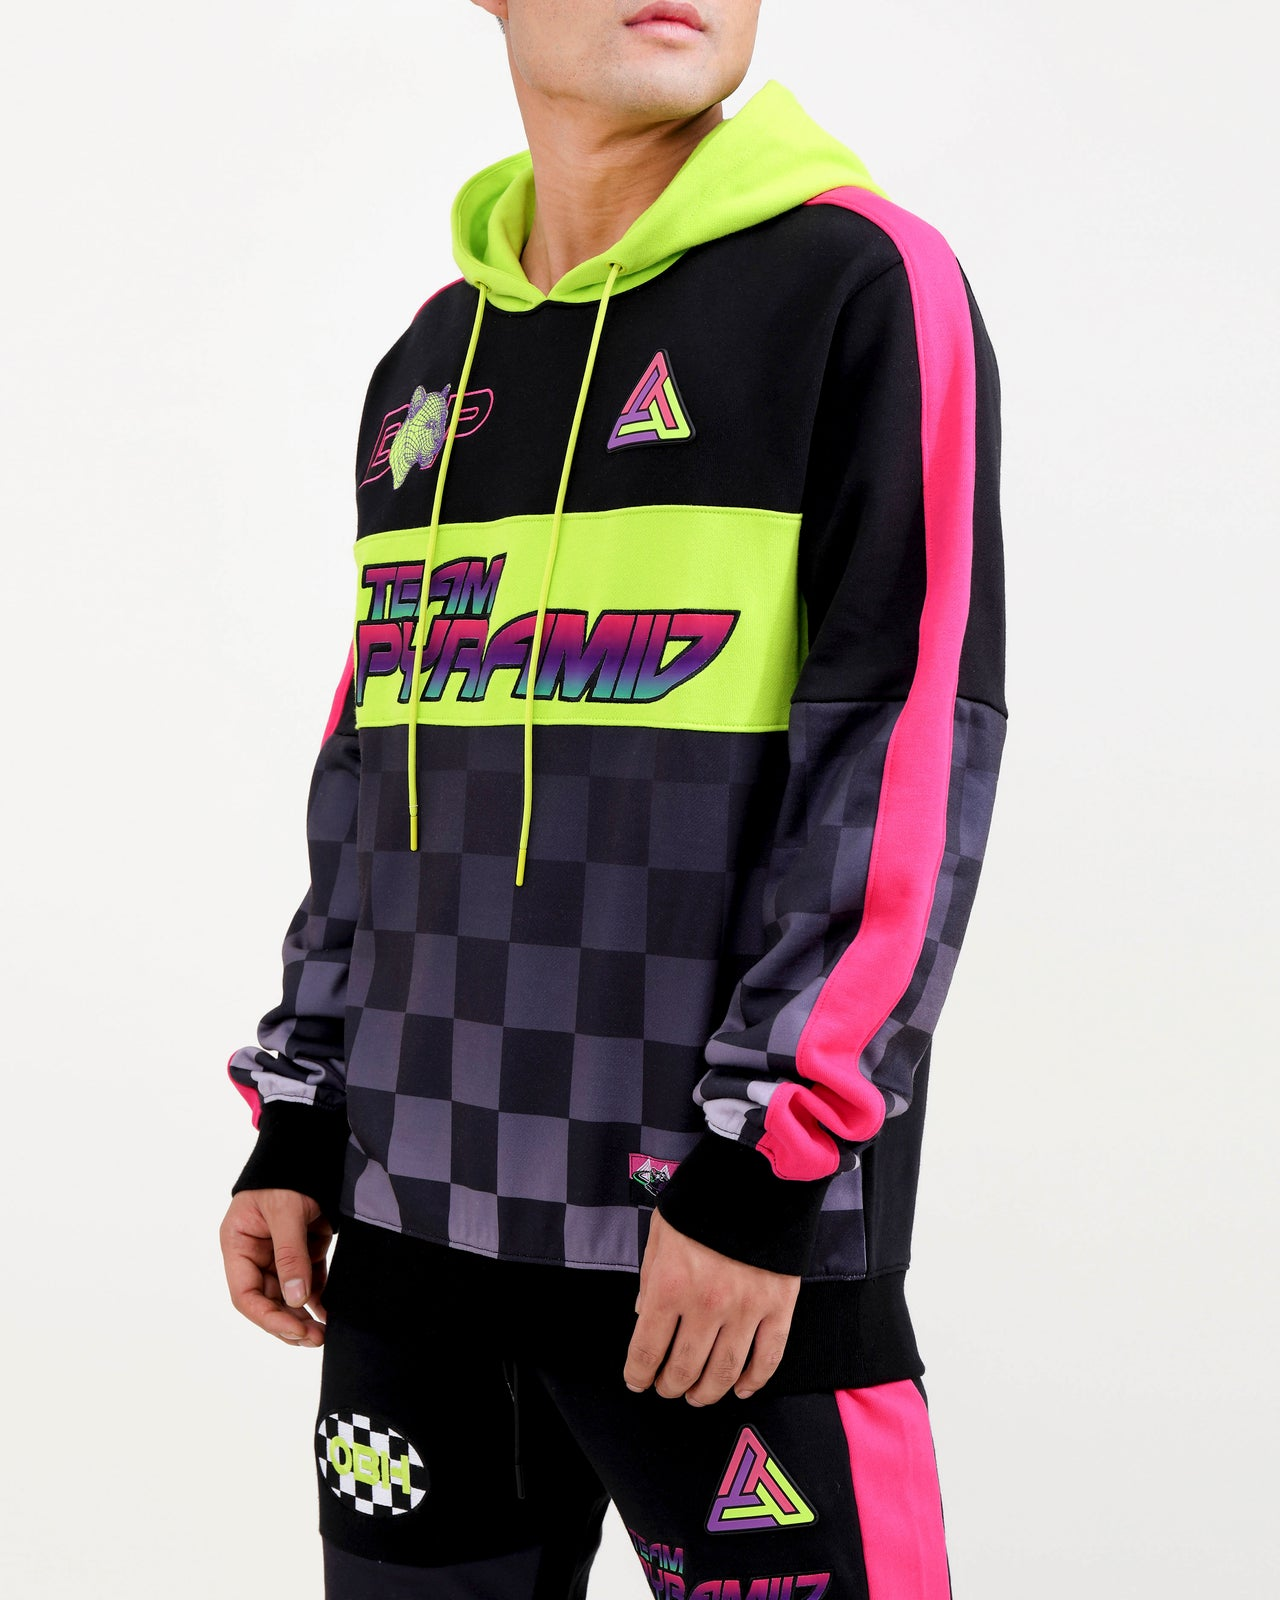 TEAM PYRAMID HOODY-COLOR: BLACK